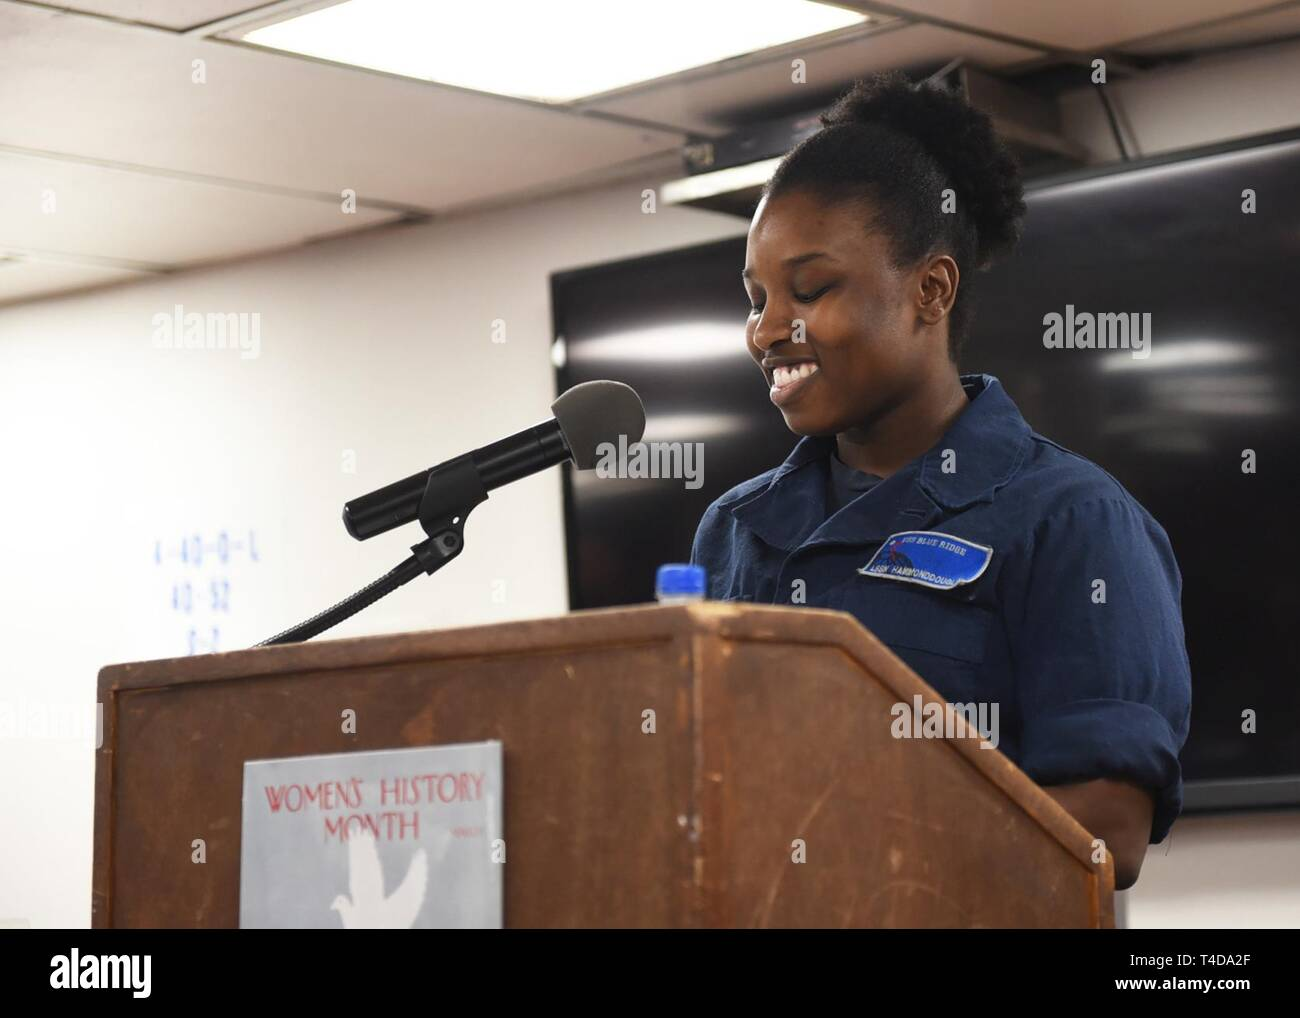 SOUTH CHINA SEA (March 22, 2019) - Logistics Specialist Seaman Zikeya Hammond-Douglas, from Philadelphia, speaks during a Women's History Month celebration on the mess decks of U.S. 7th Fleet Flagship USS Blue Ridge (LCC 19). Blue Ridge is the oldest operational ship in the Navy and, as 7th Fleet command ship, actively works to foster relationships with allies and partners in the Indo-Pacific Region. - Stock Image